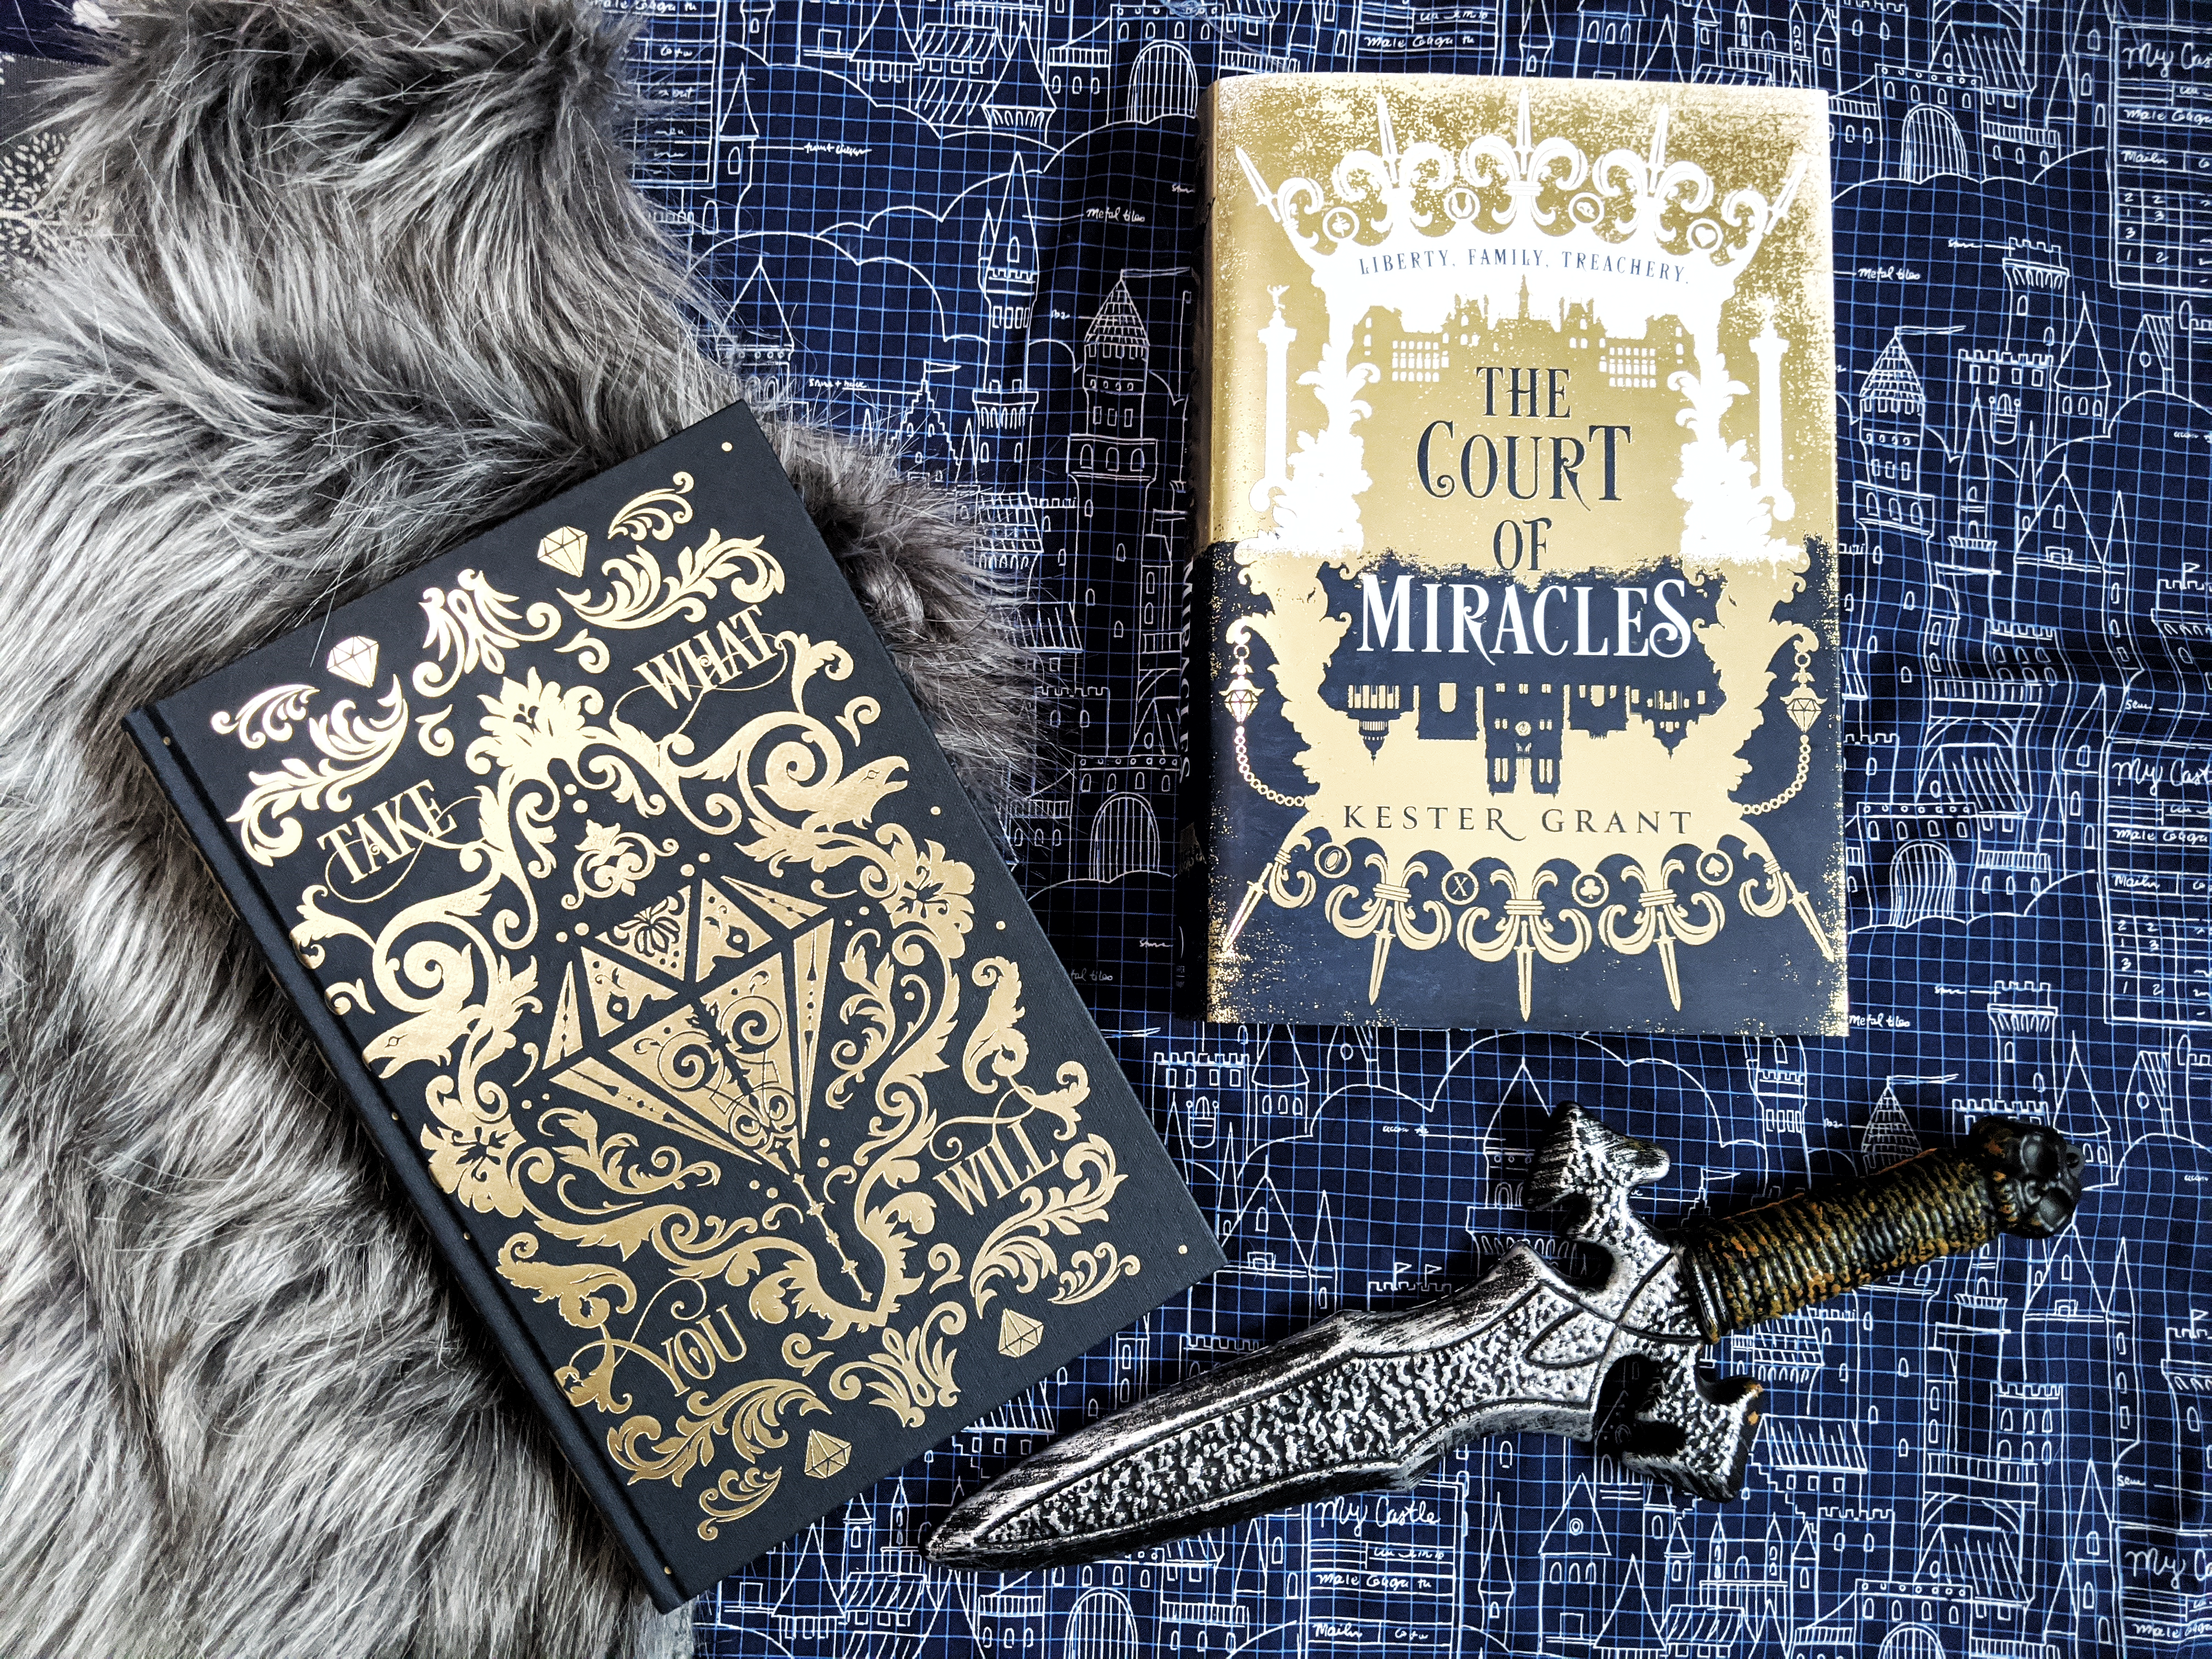 The Court of Miracles Waterstone edition